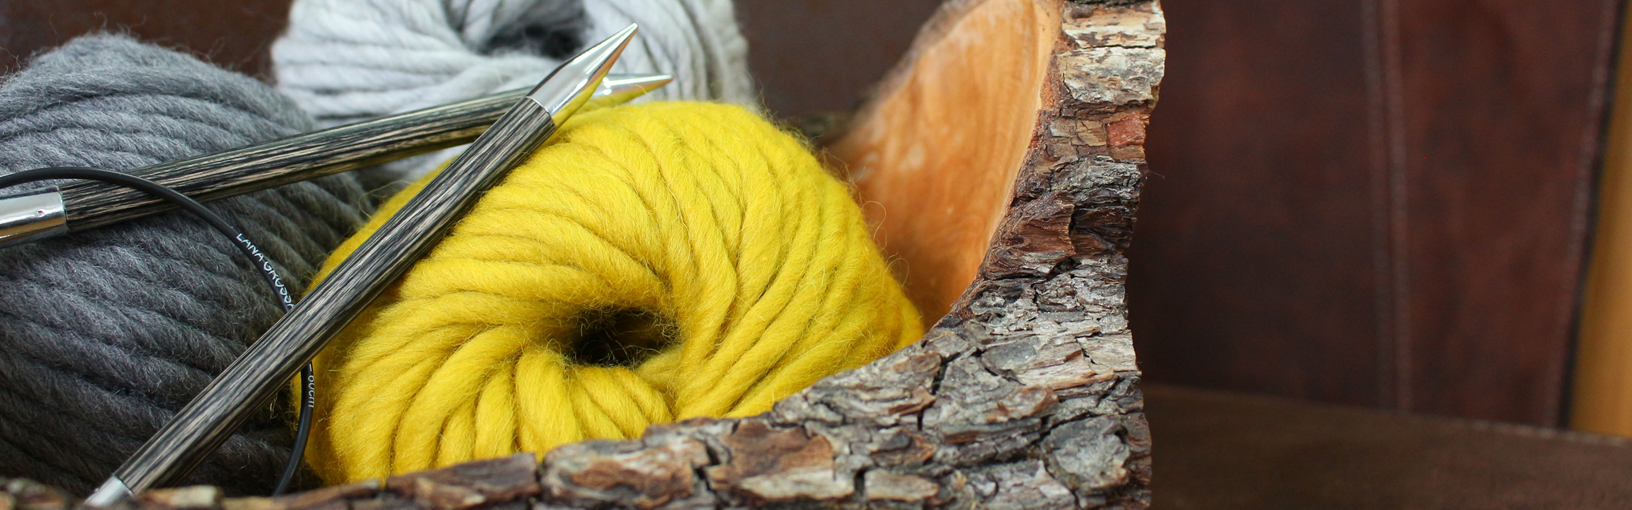 FASHIONABLE YARNS WITH MODERN STRUCTURE AND FEEL Lana Grossa Yarns